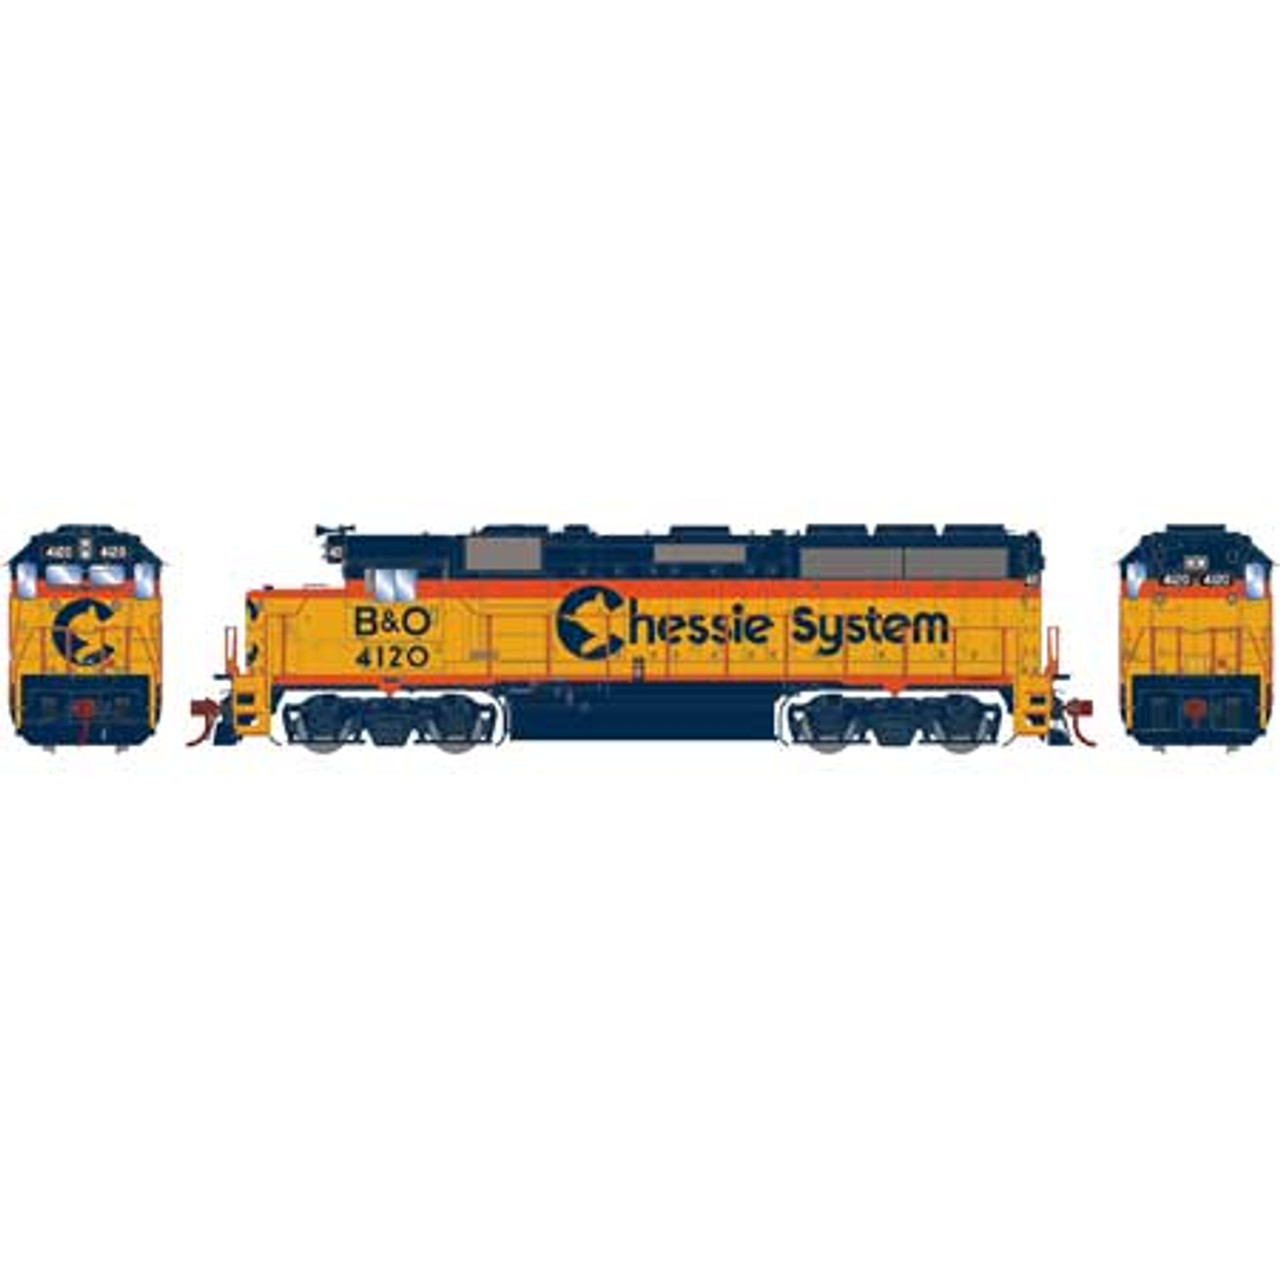 ATHG65756 GP40-2 B&O - Chessie System #4120 with DCC & Sound Tsunami2  (SCALE=HO)  Part #ATHG65756